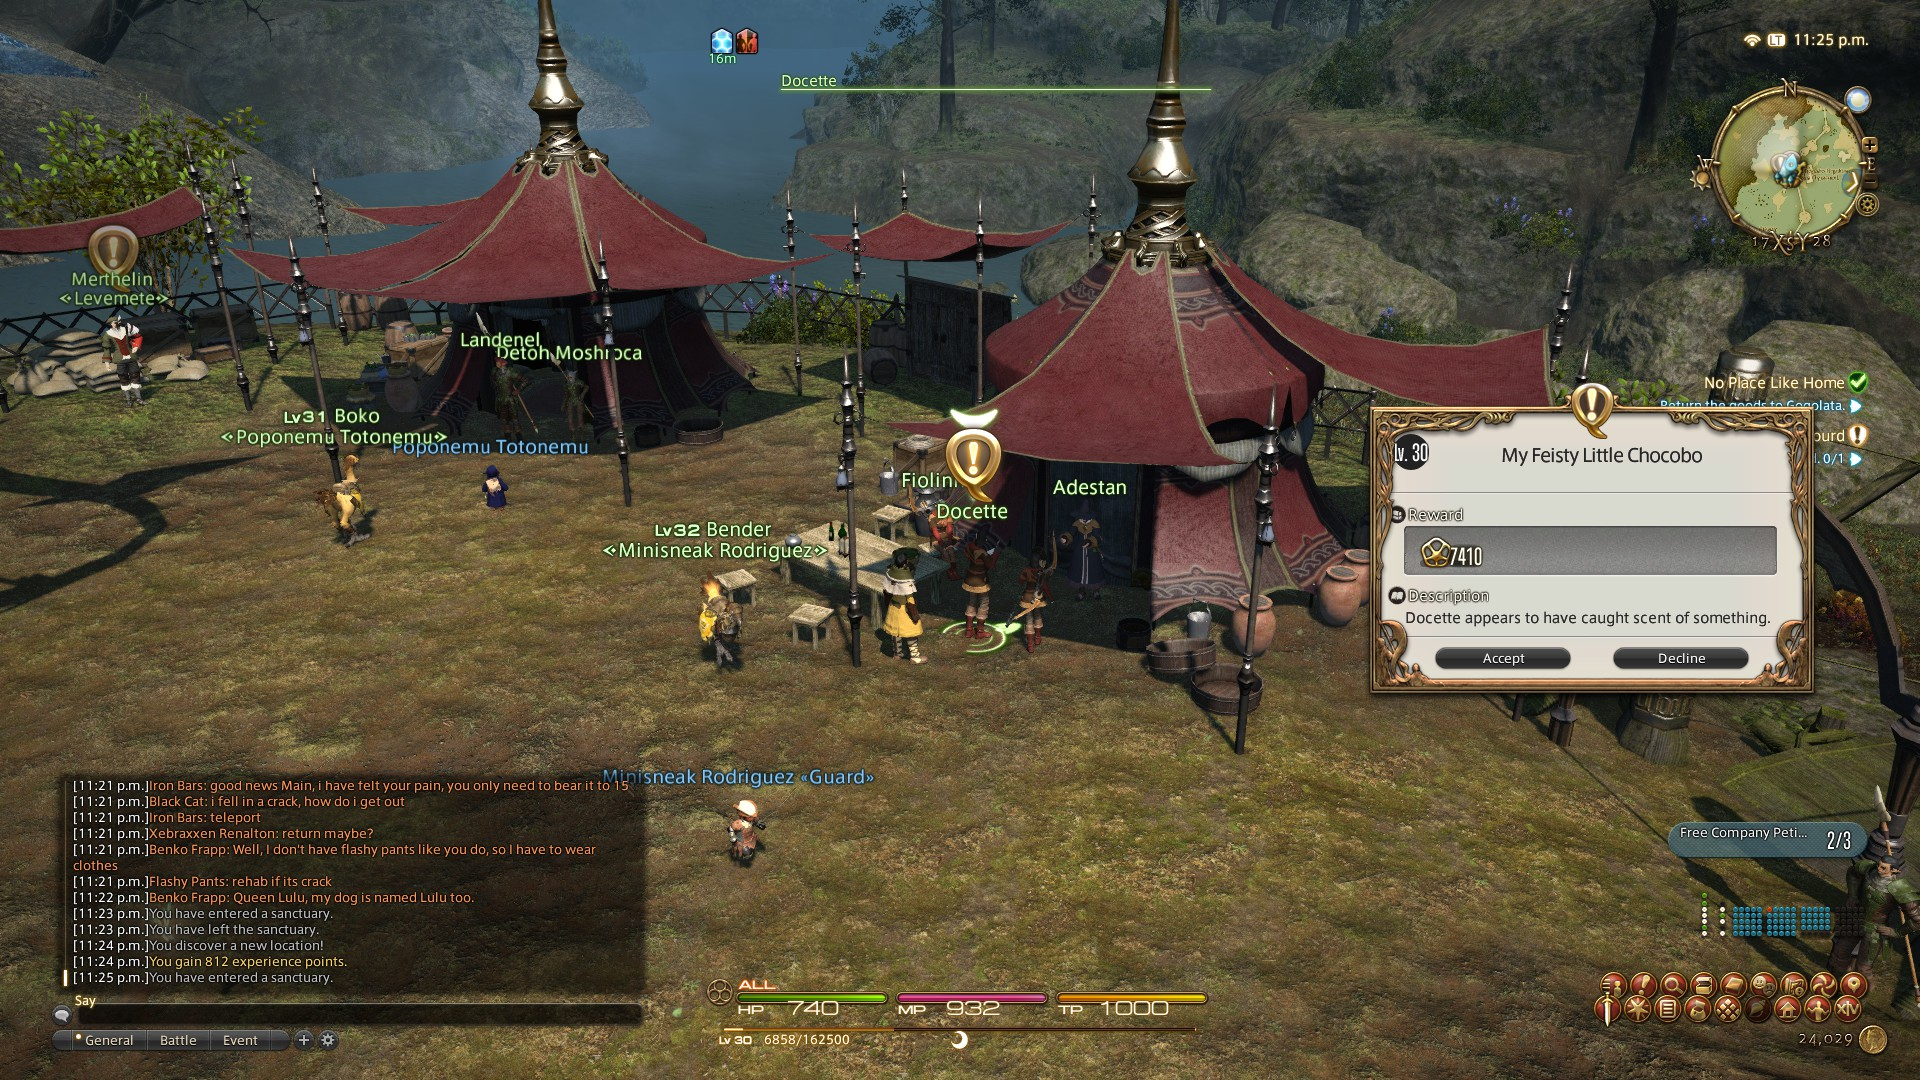 Final Fantasy XIV - How to use your Chocobo in battle